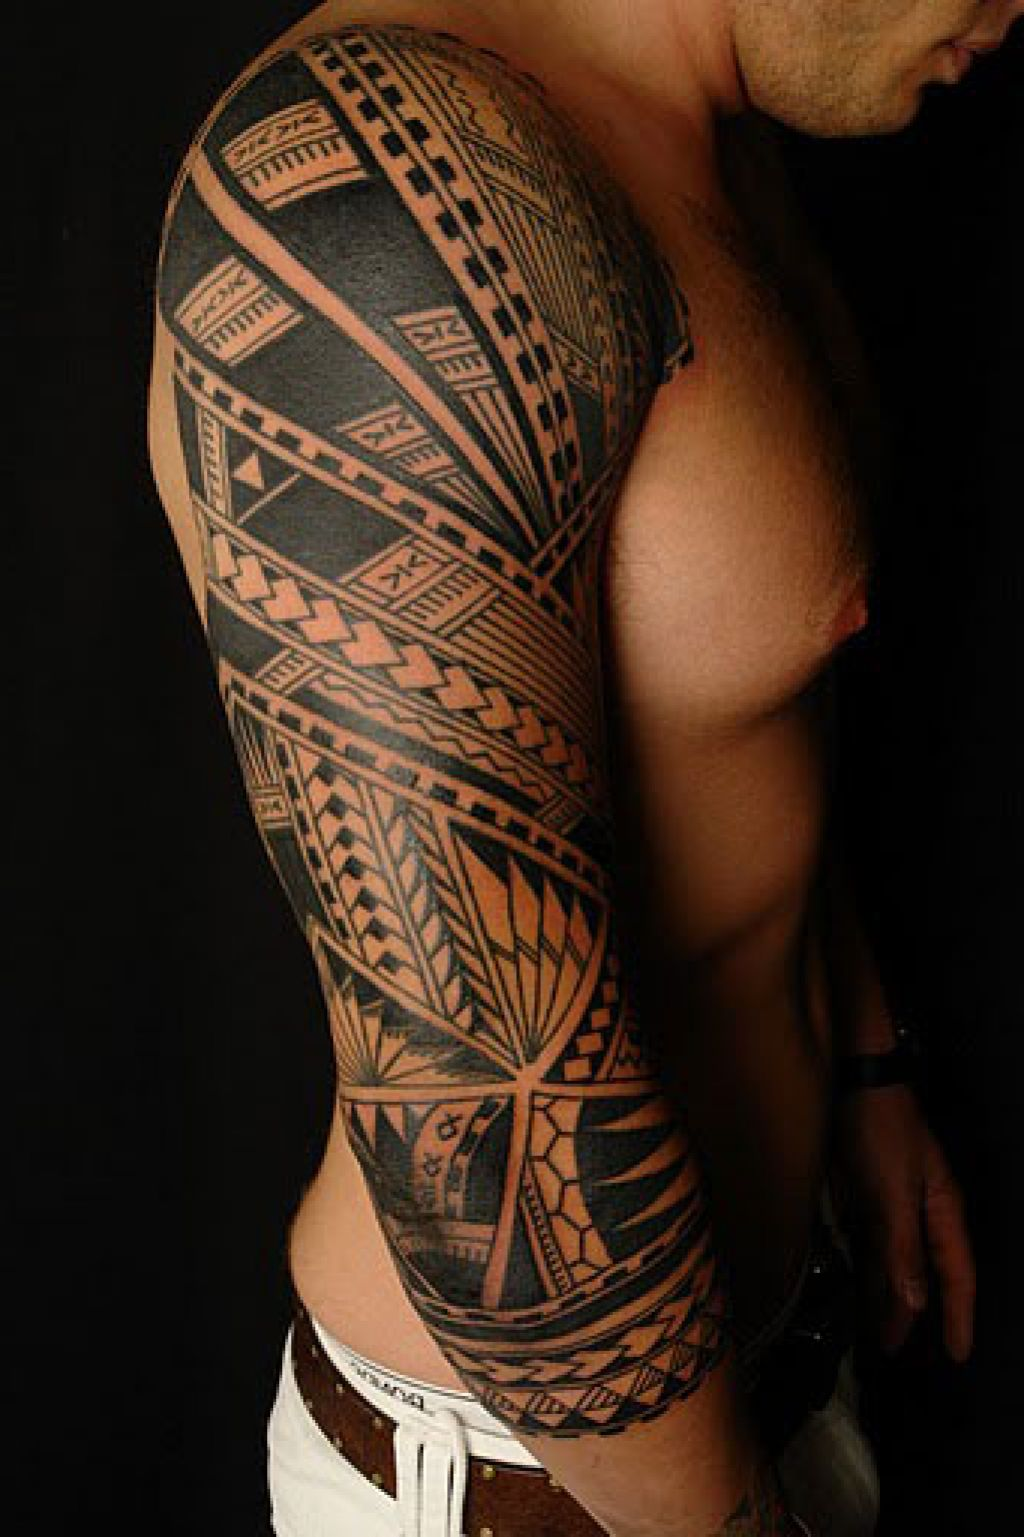 Hawaiian flower tribal tattoos wallpaper tattoos design wallpaper hawaiian flower tribal tattoos wallpaper izmirmasajfo